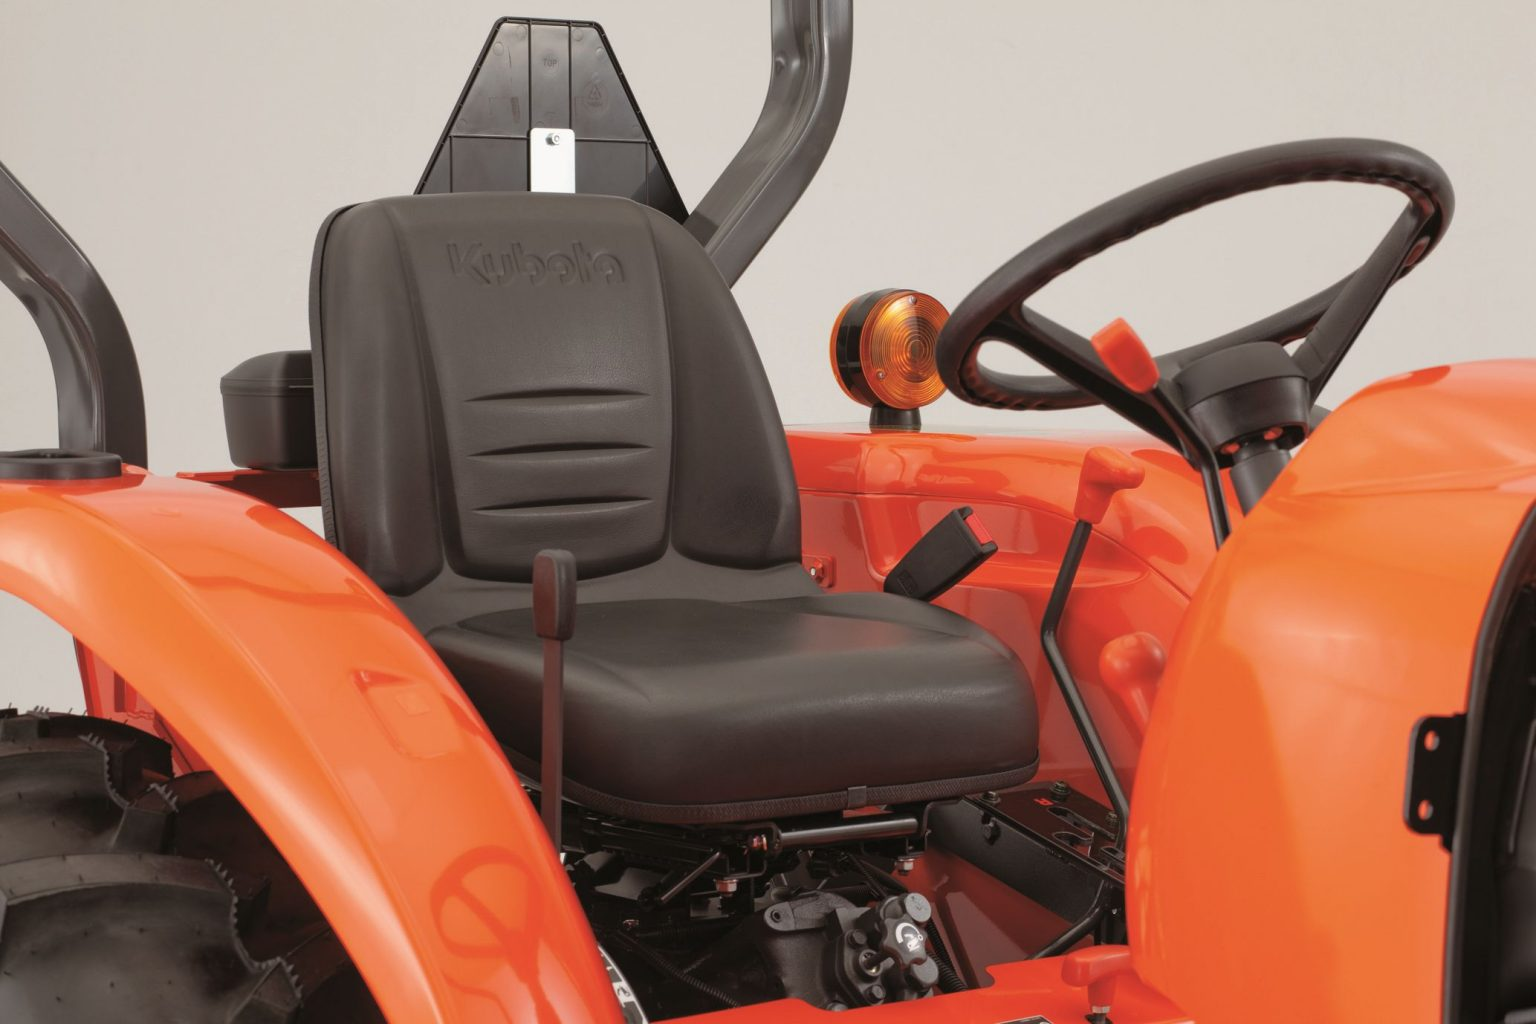 Tractor Transmission System : Kubota l price uk backhoe attachment specs features